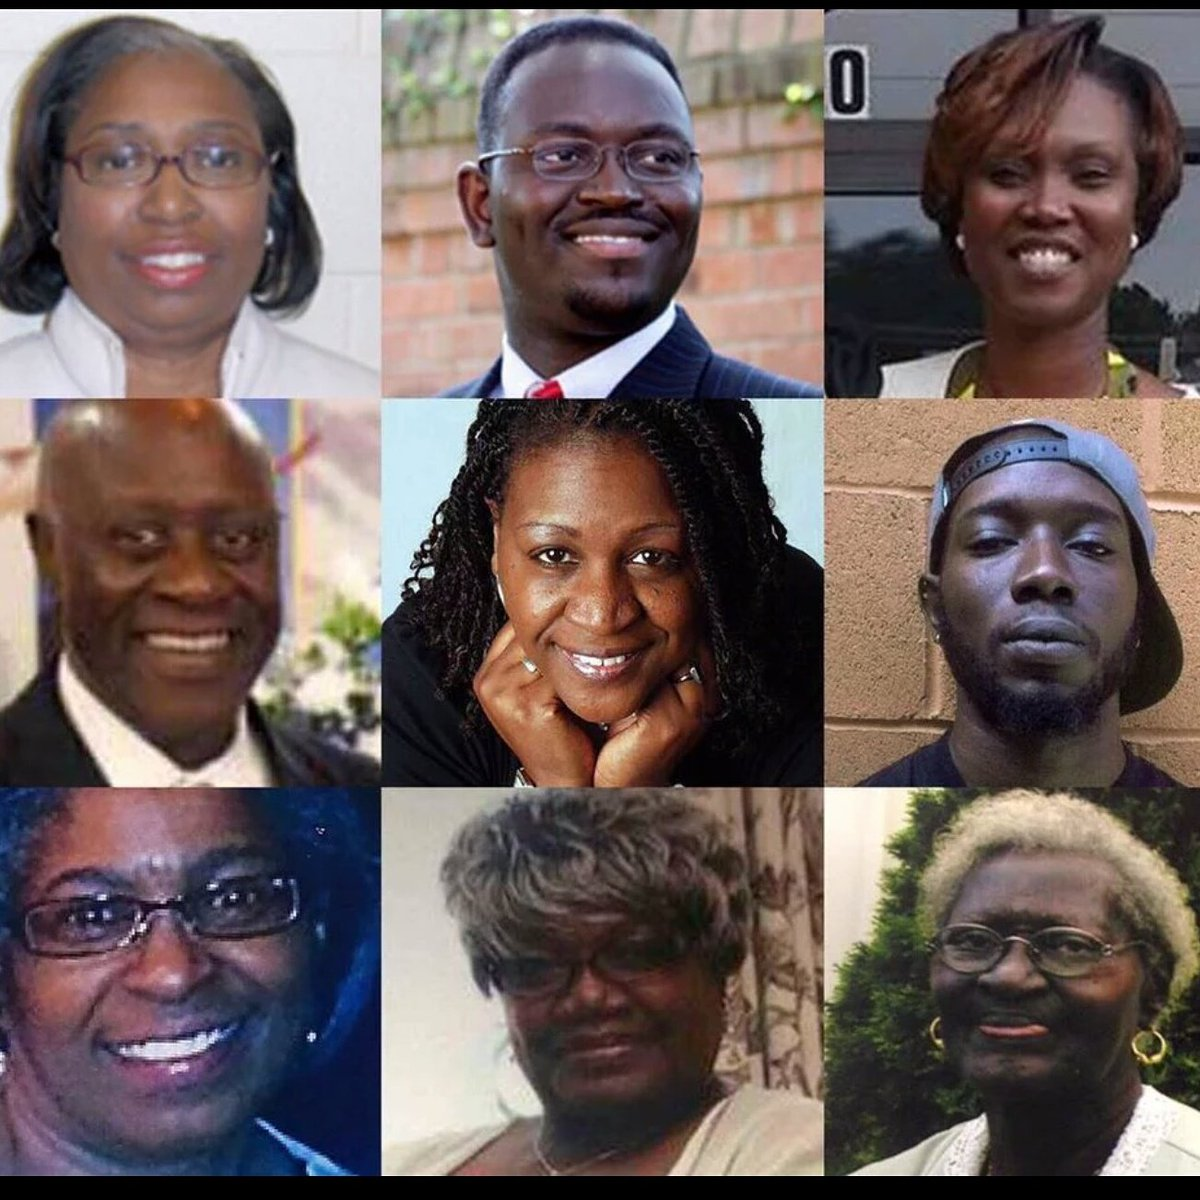 1 year since #CharlestonShooting May their souls rest in peace Prayers to their families on this day and everyday